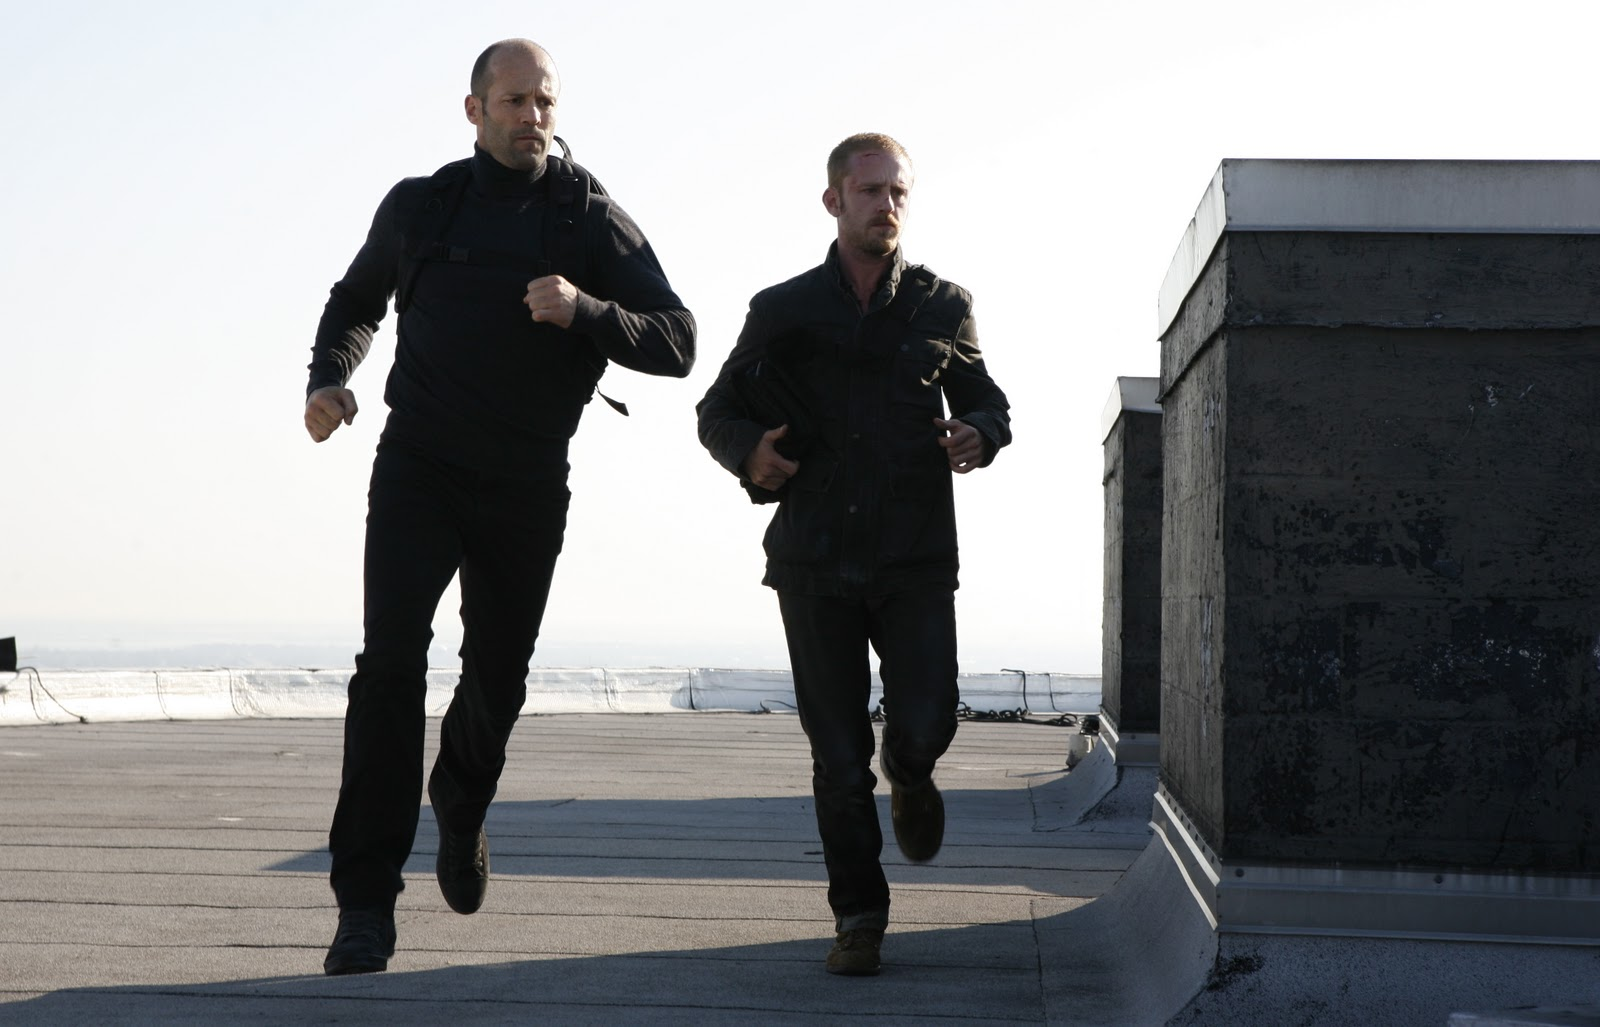 http://4.bp.blogspot.com/_4CCYb8CgeO0/TU6Ykw1Y_LI/AAAAAAAAAMM/6fhMMJhaUzM/s1600/The-Mechanic-movie-image-Ben-Foster-Jason-Statham-2.jpg